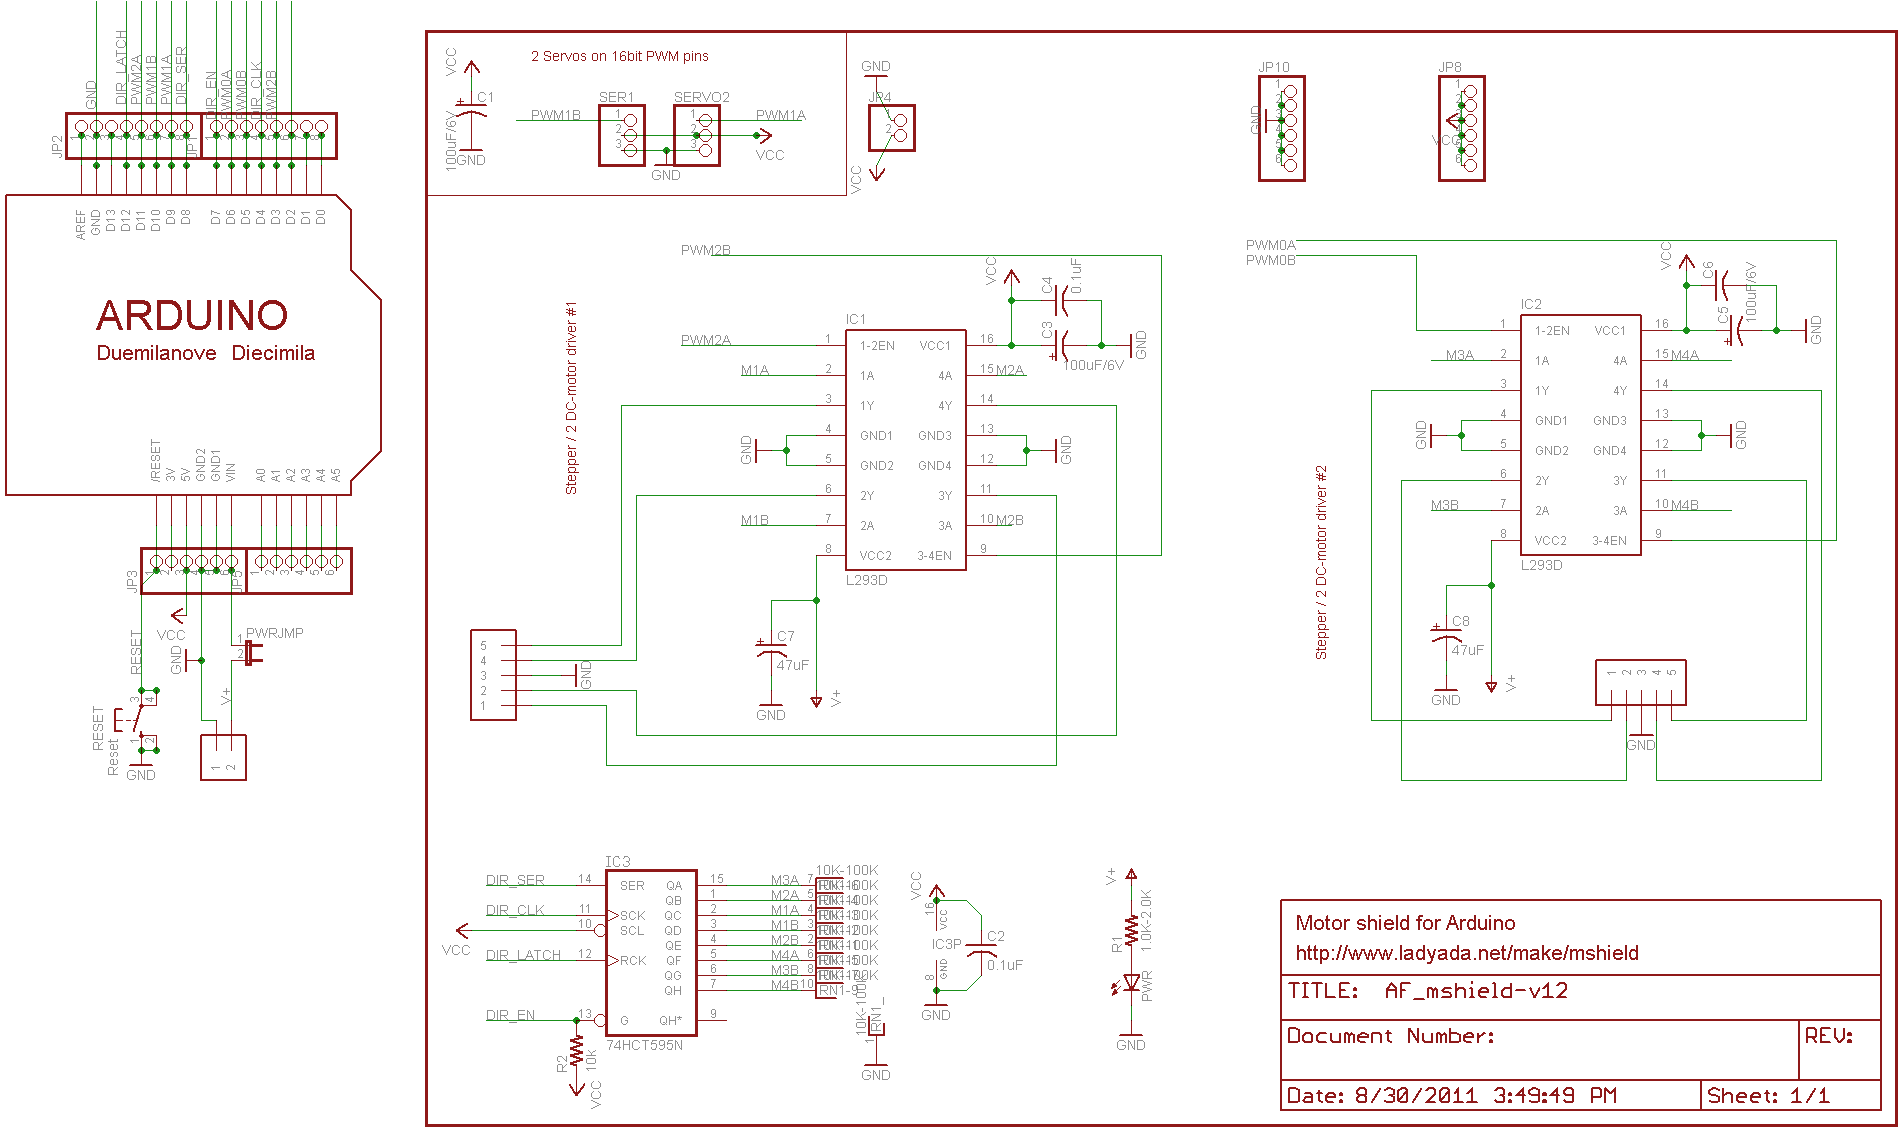 arduino mega 2560 schematic html with 511 Shield De Motores Para Arduino Shd Mstepper on Interfacing Ultrasonic Sensor Arduino in addition Elab Peers Mega 2560 3 2 Tft Lcd Touch Tft Mega Shield additionally No Cost Reference Design Data For Arduino Mega 2560 in addition Honda Odyssey 2005 Interior additionally Index.